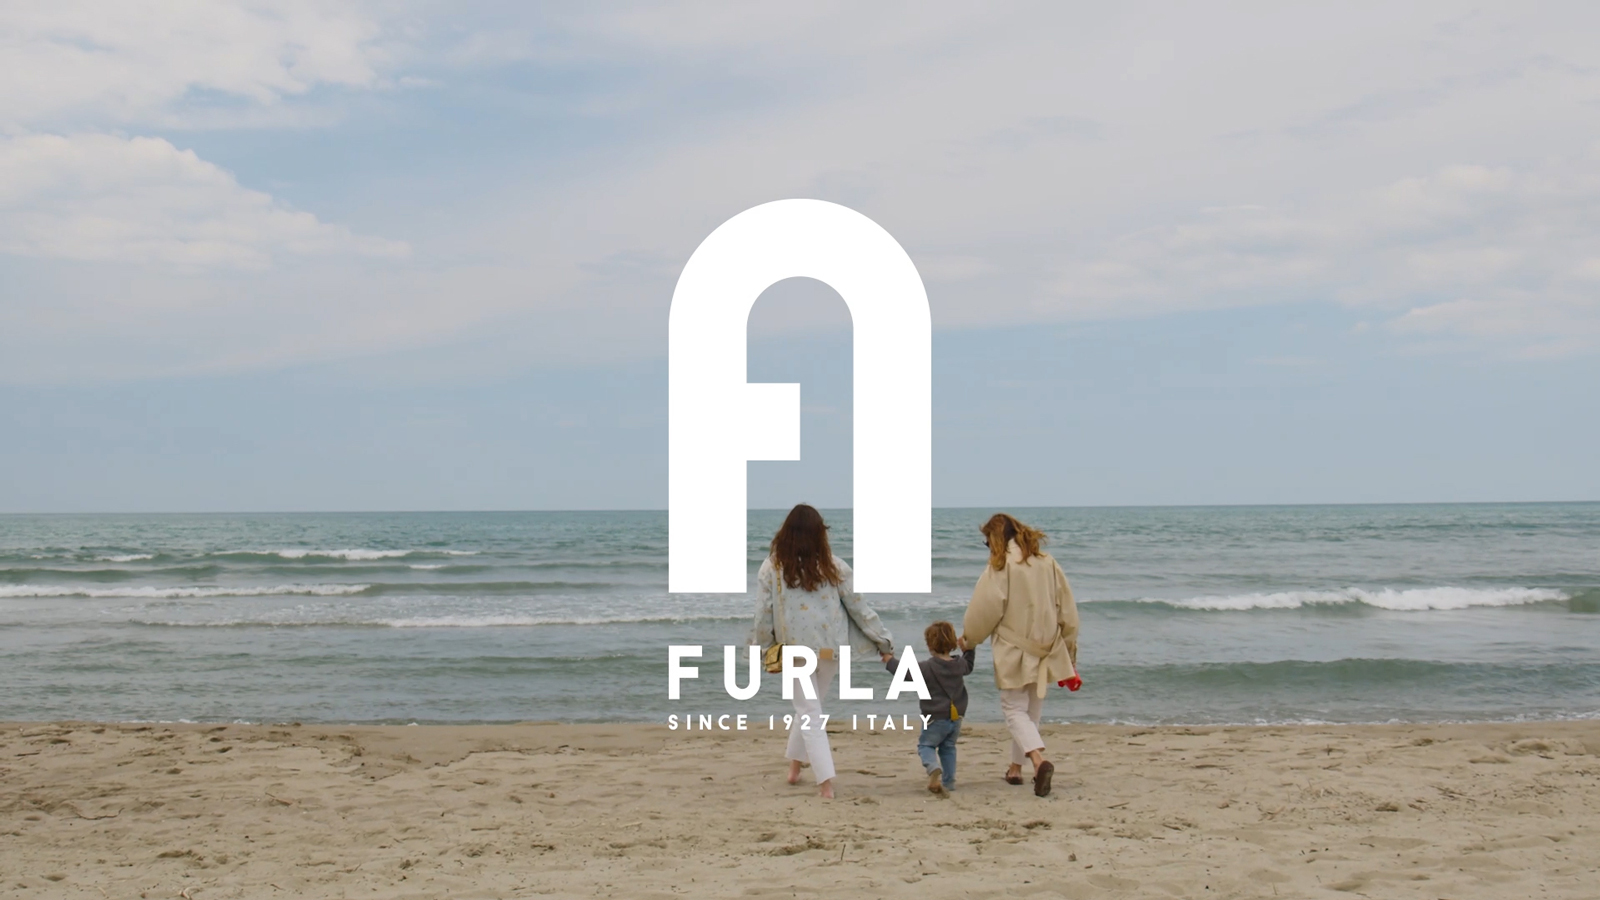 Furla's Interviews: stories of mothers and daughters